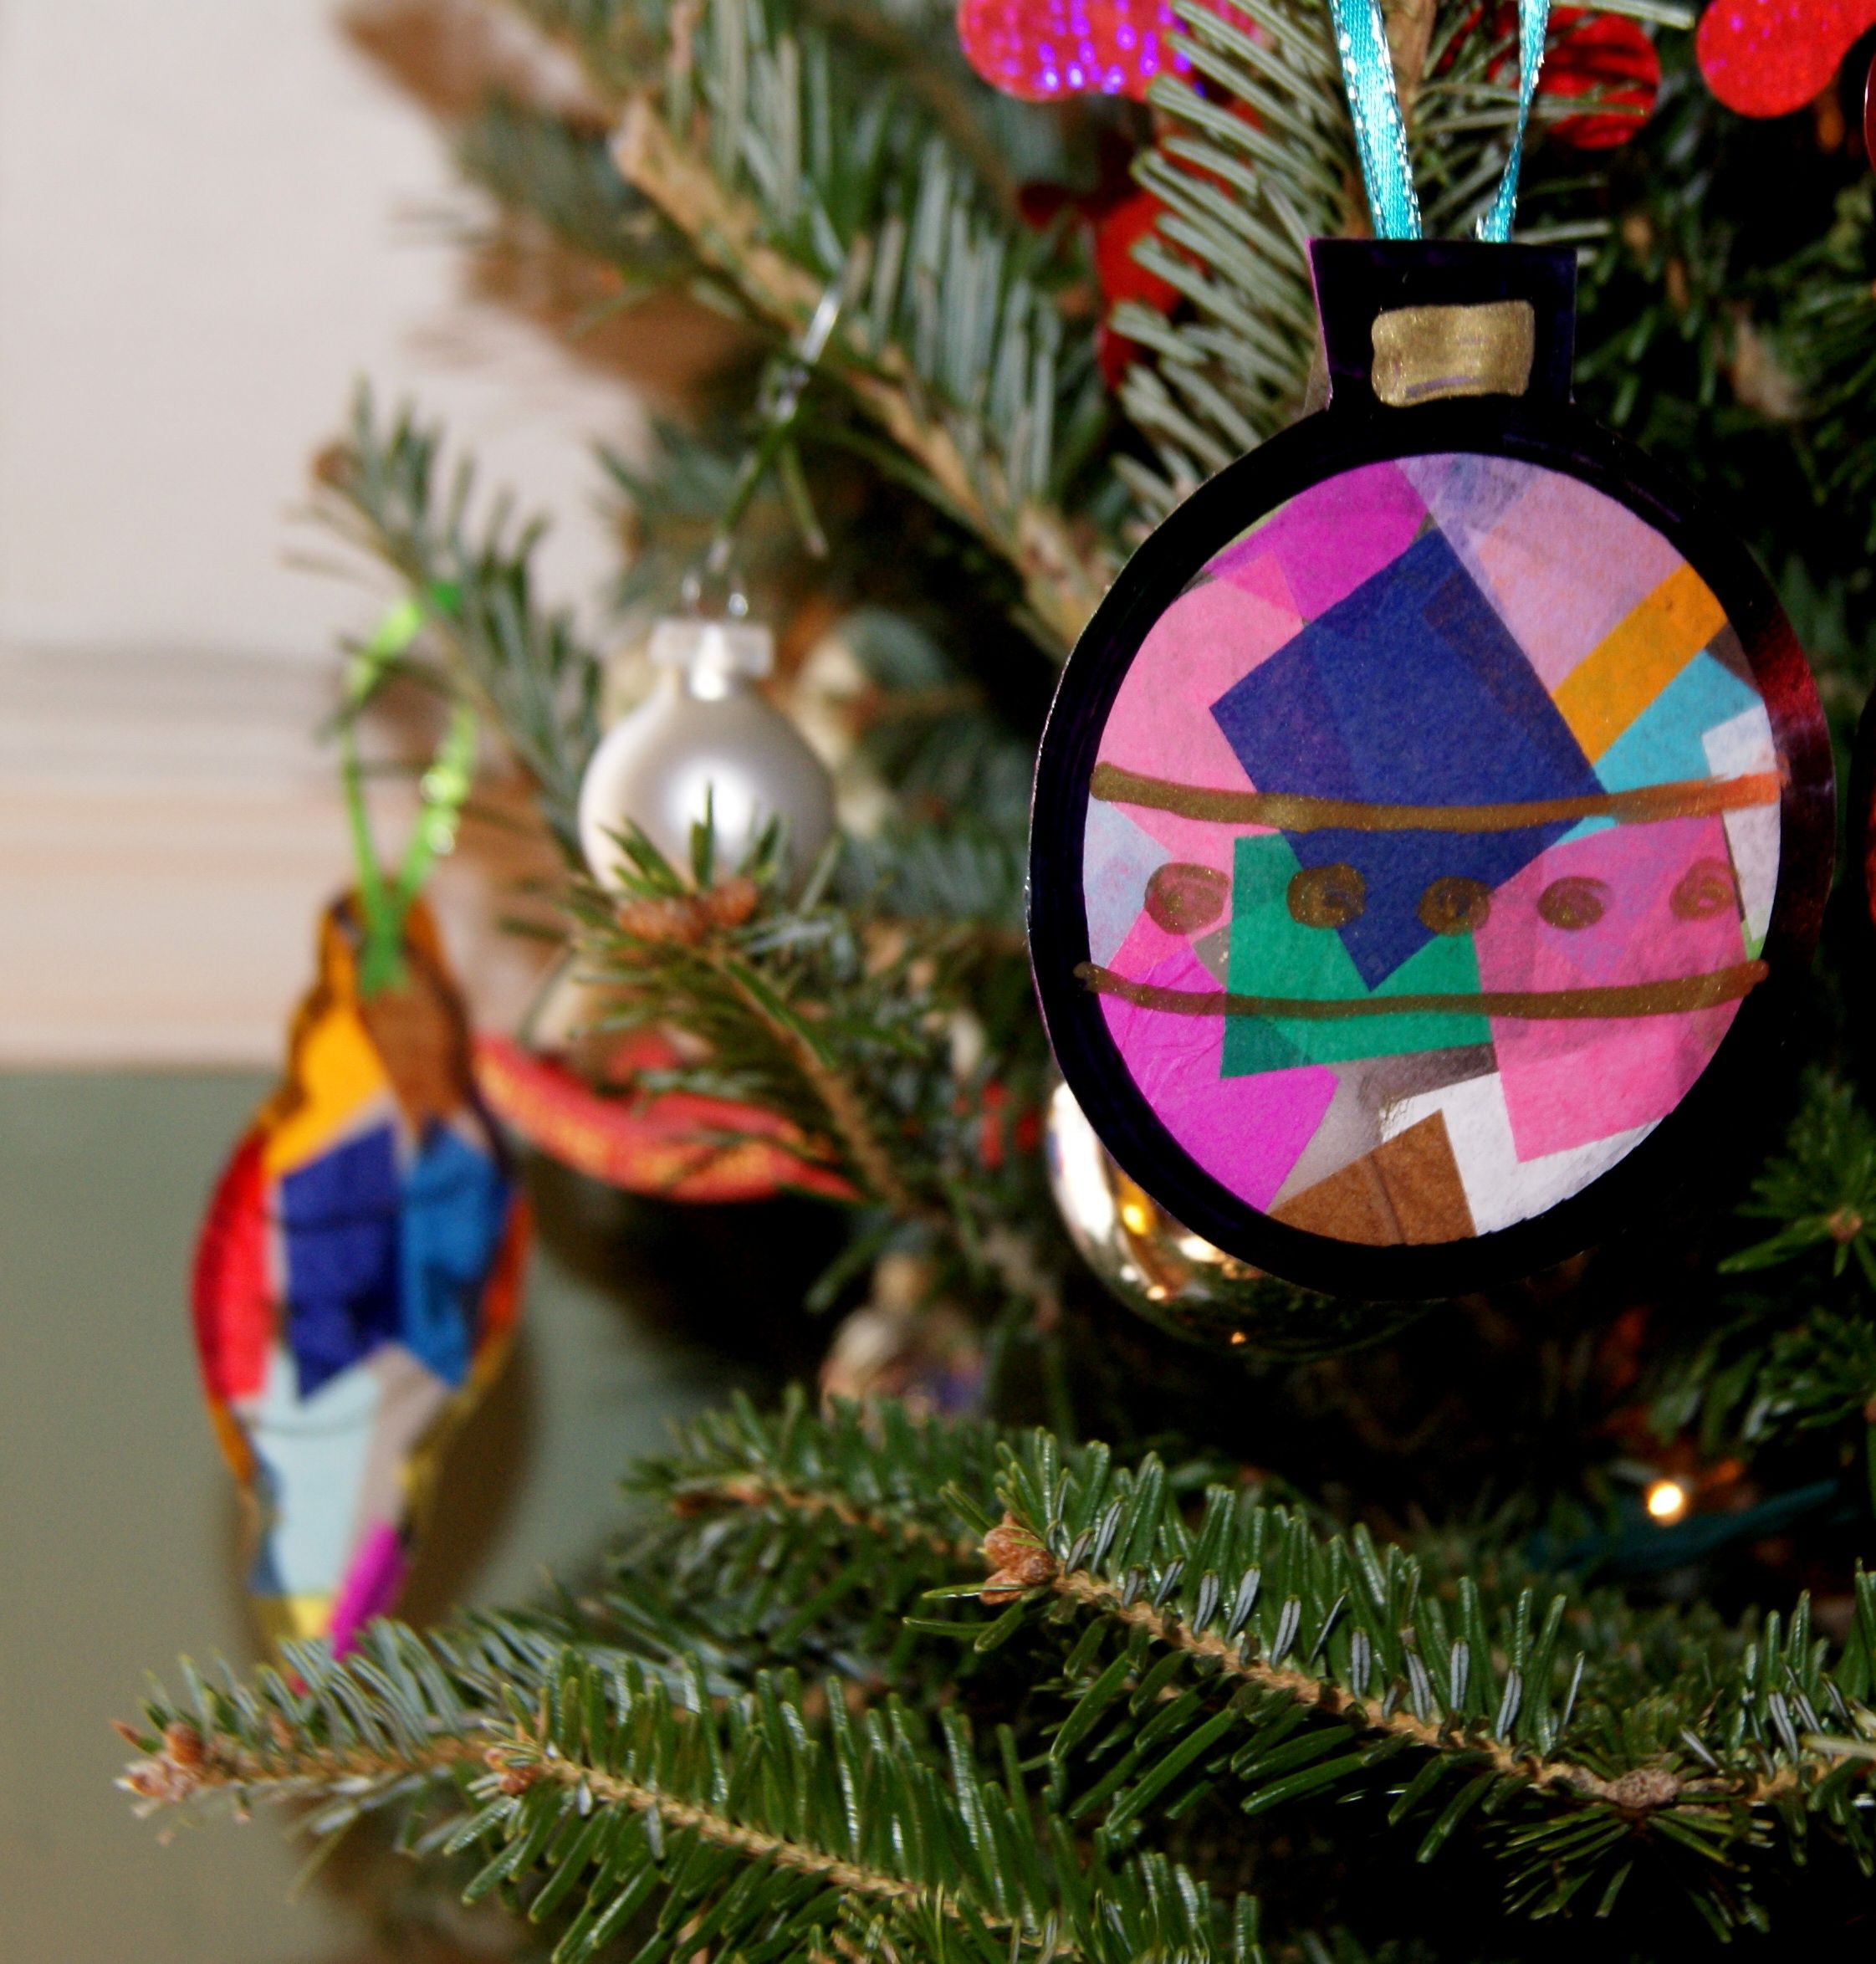 Details On How To Make These Amazing Ornaments On Toddler